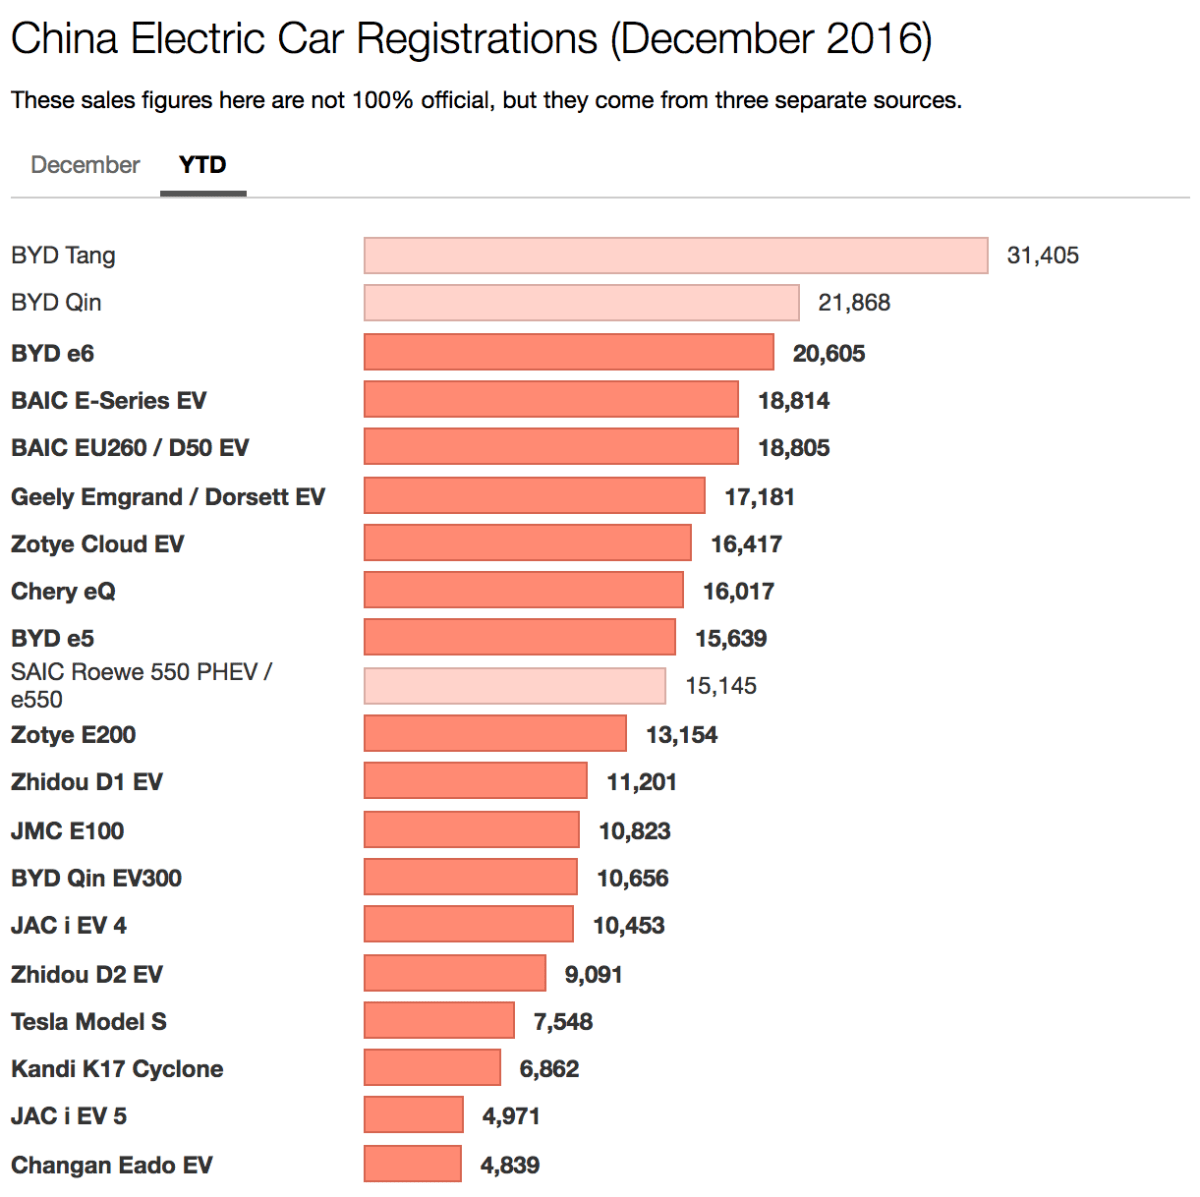 China Electric Car Sales Byd Wins 2016 Geely Emgrand Ev Wins December